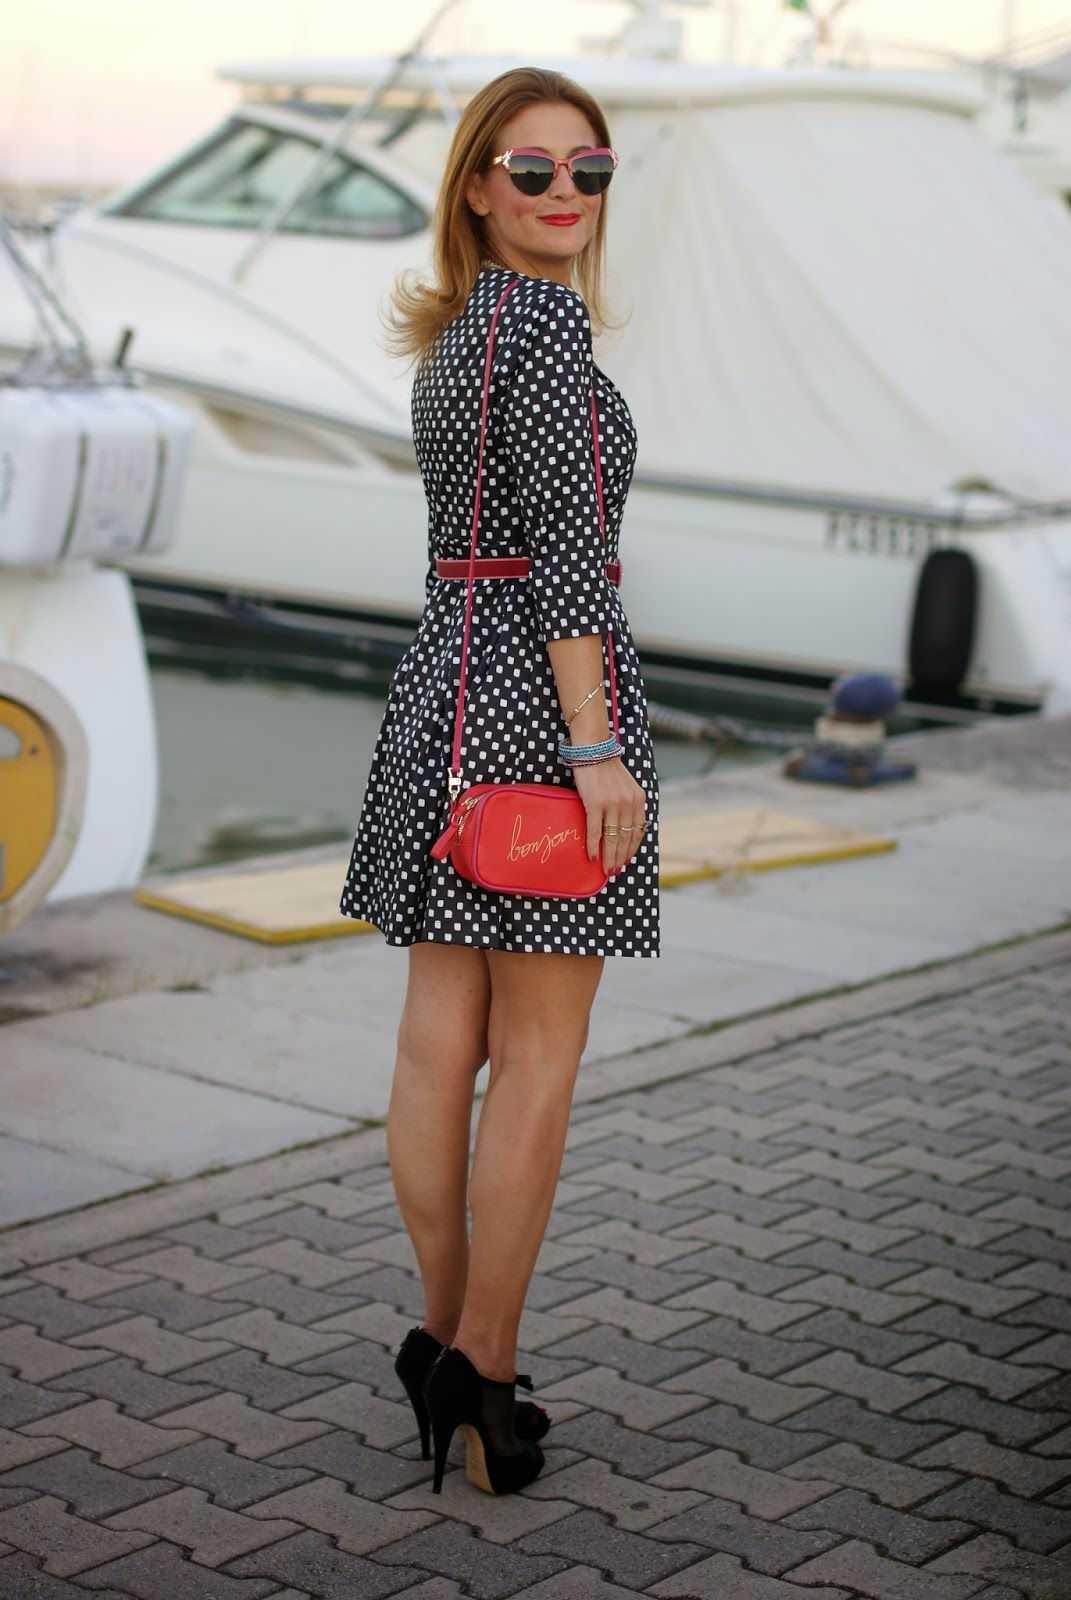 short dress, polka dots dress, bonjour bag, Luca Barra collana, Fashion and Cookies, fashion blogger